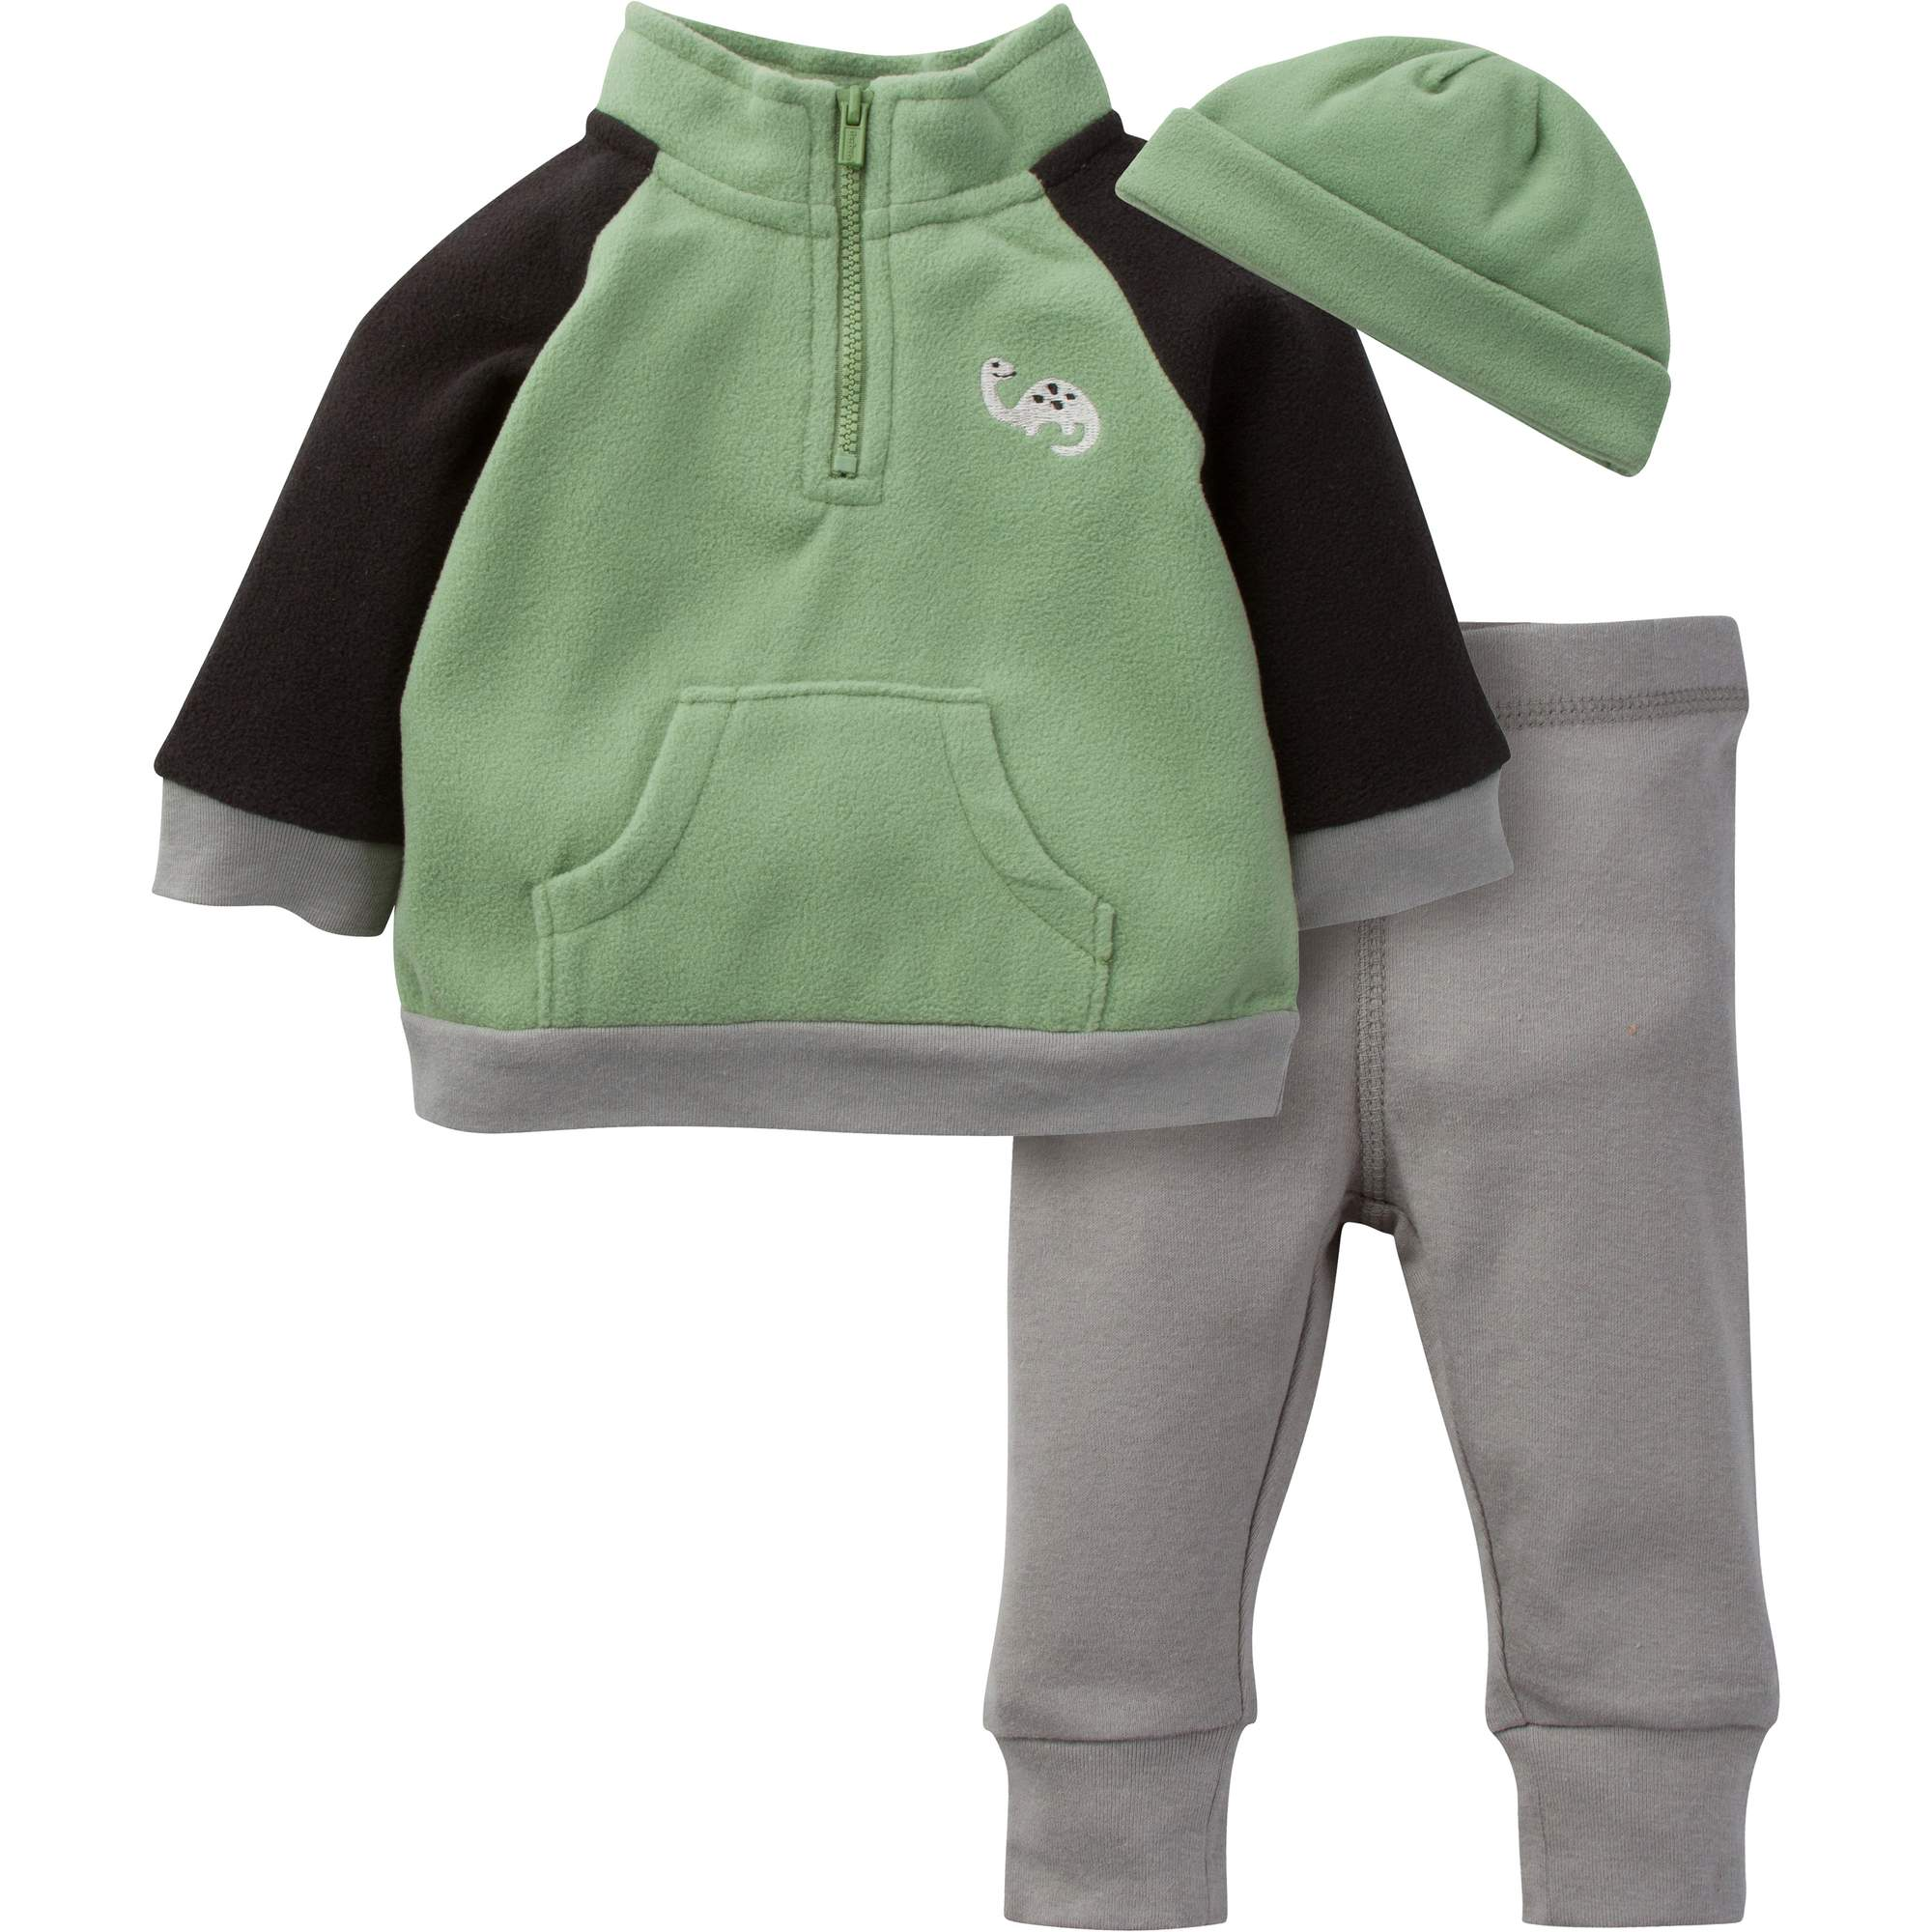 Newborn Baby Boy Microfleece Zip Jacket, Pant & Hat 3pc Outfit Set